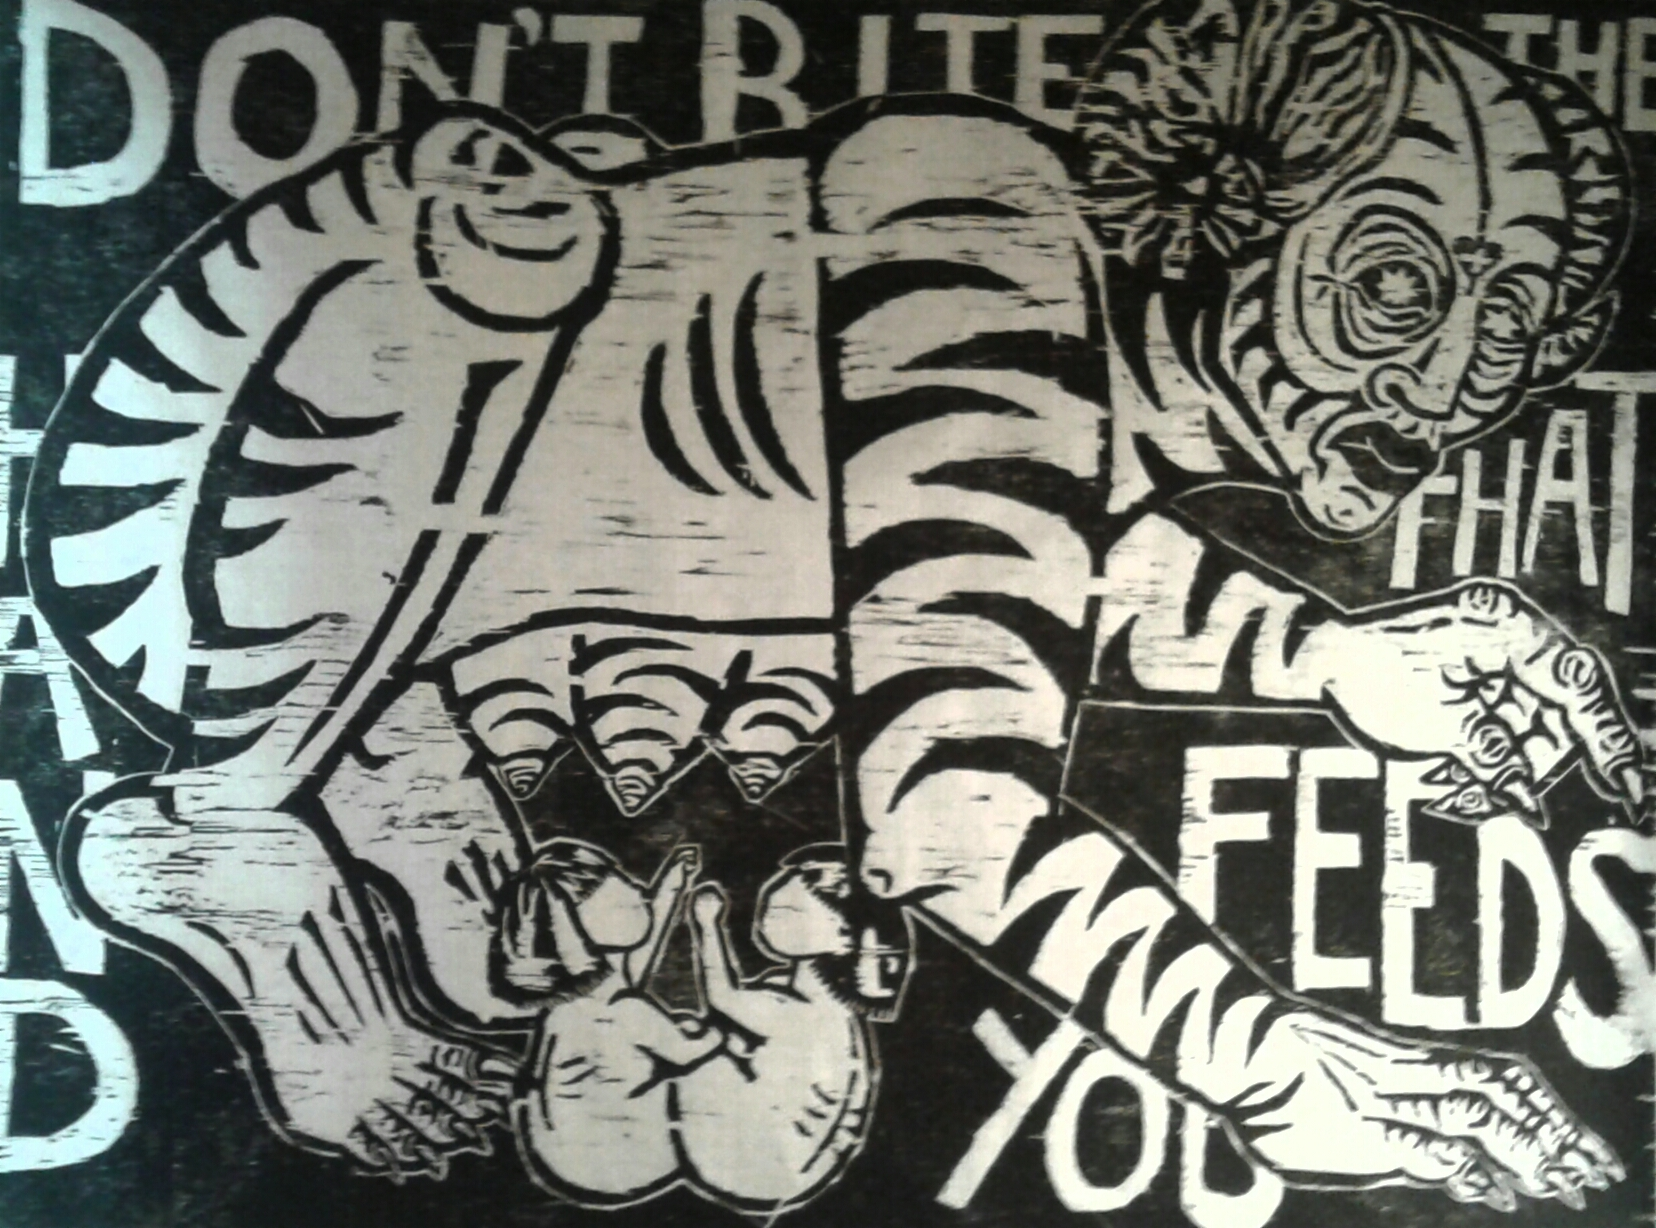 """""""Don't Bite The Hand That Feeds You"""" by Cori Hills,Print series of 10,black ink on Asian paper, 4x3ft, 2017, $400"""